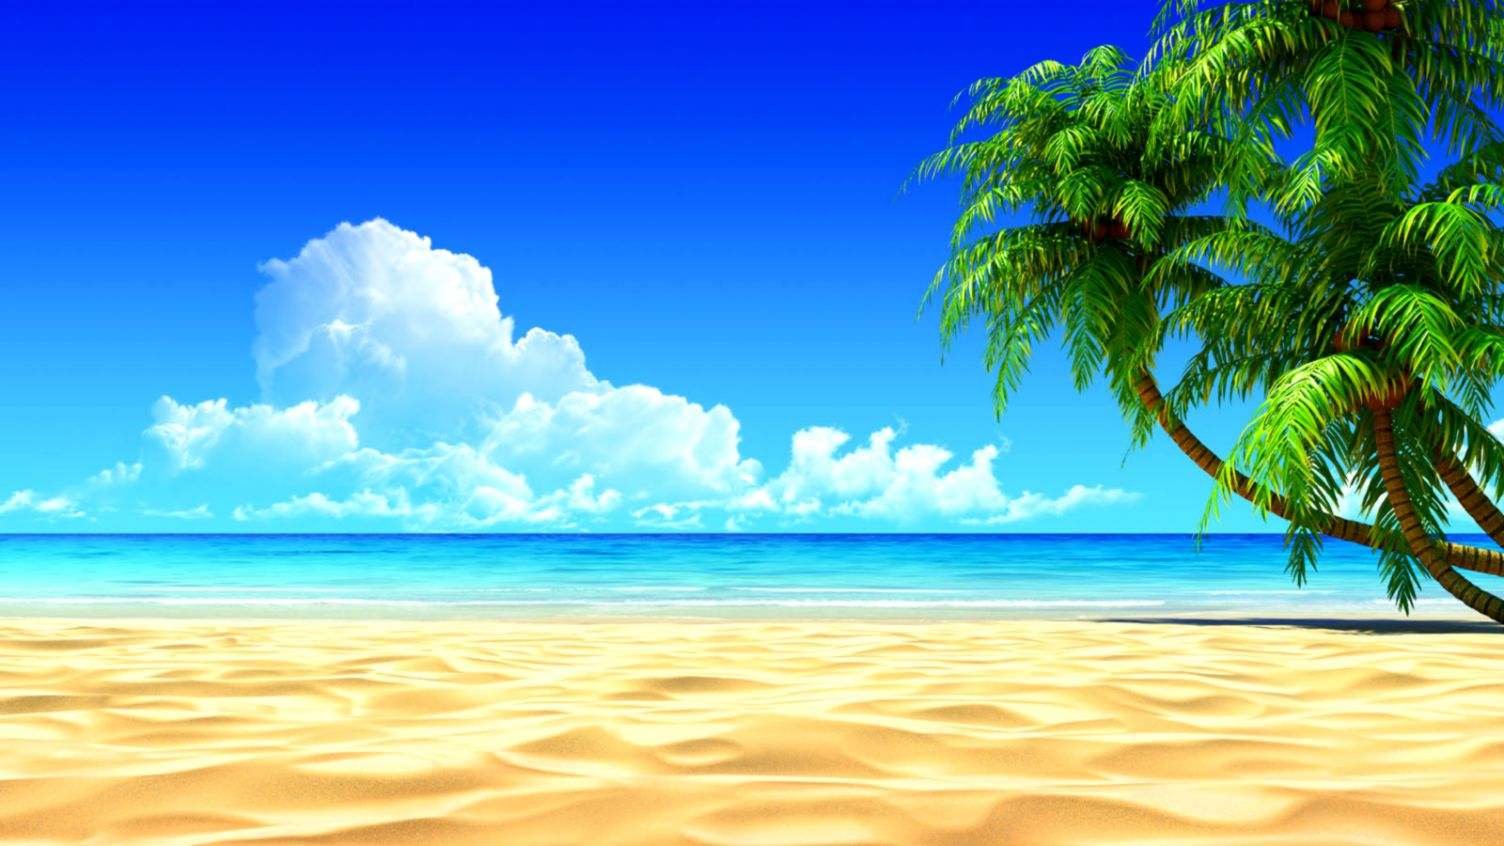 40 Beautiful Beach Wallpapers for your Desktop Mobile and Tablet HD